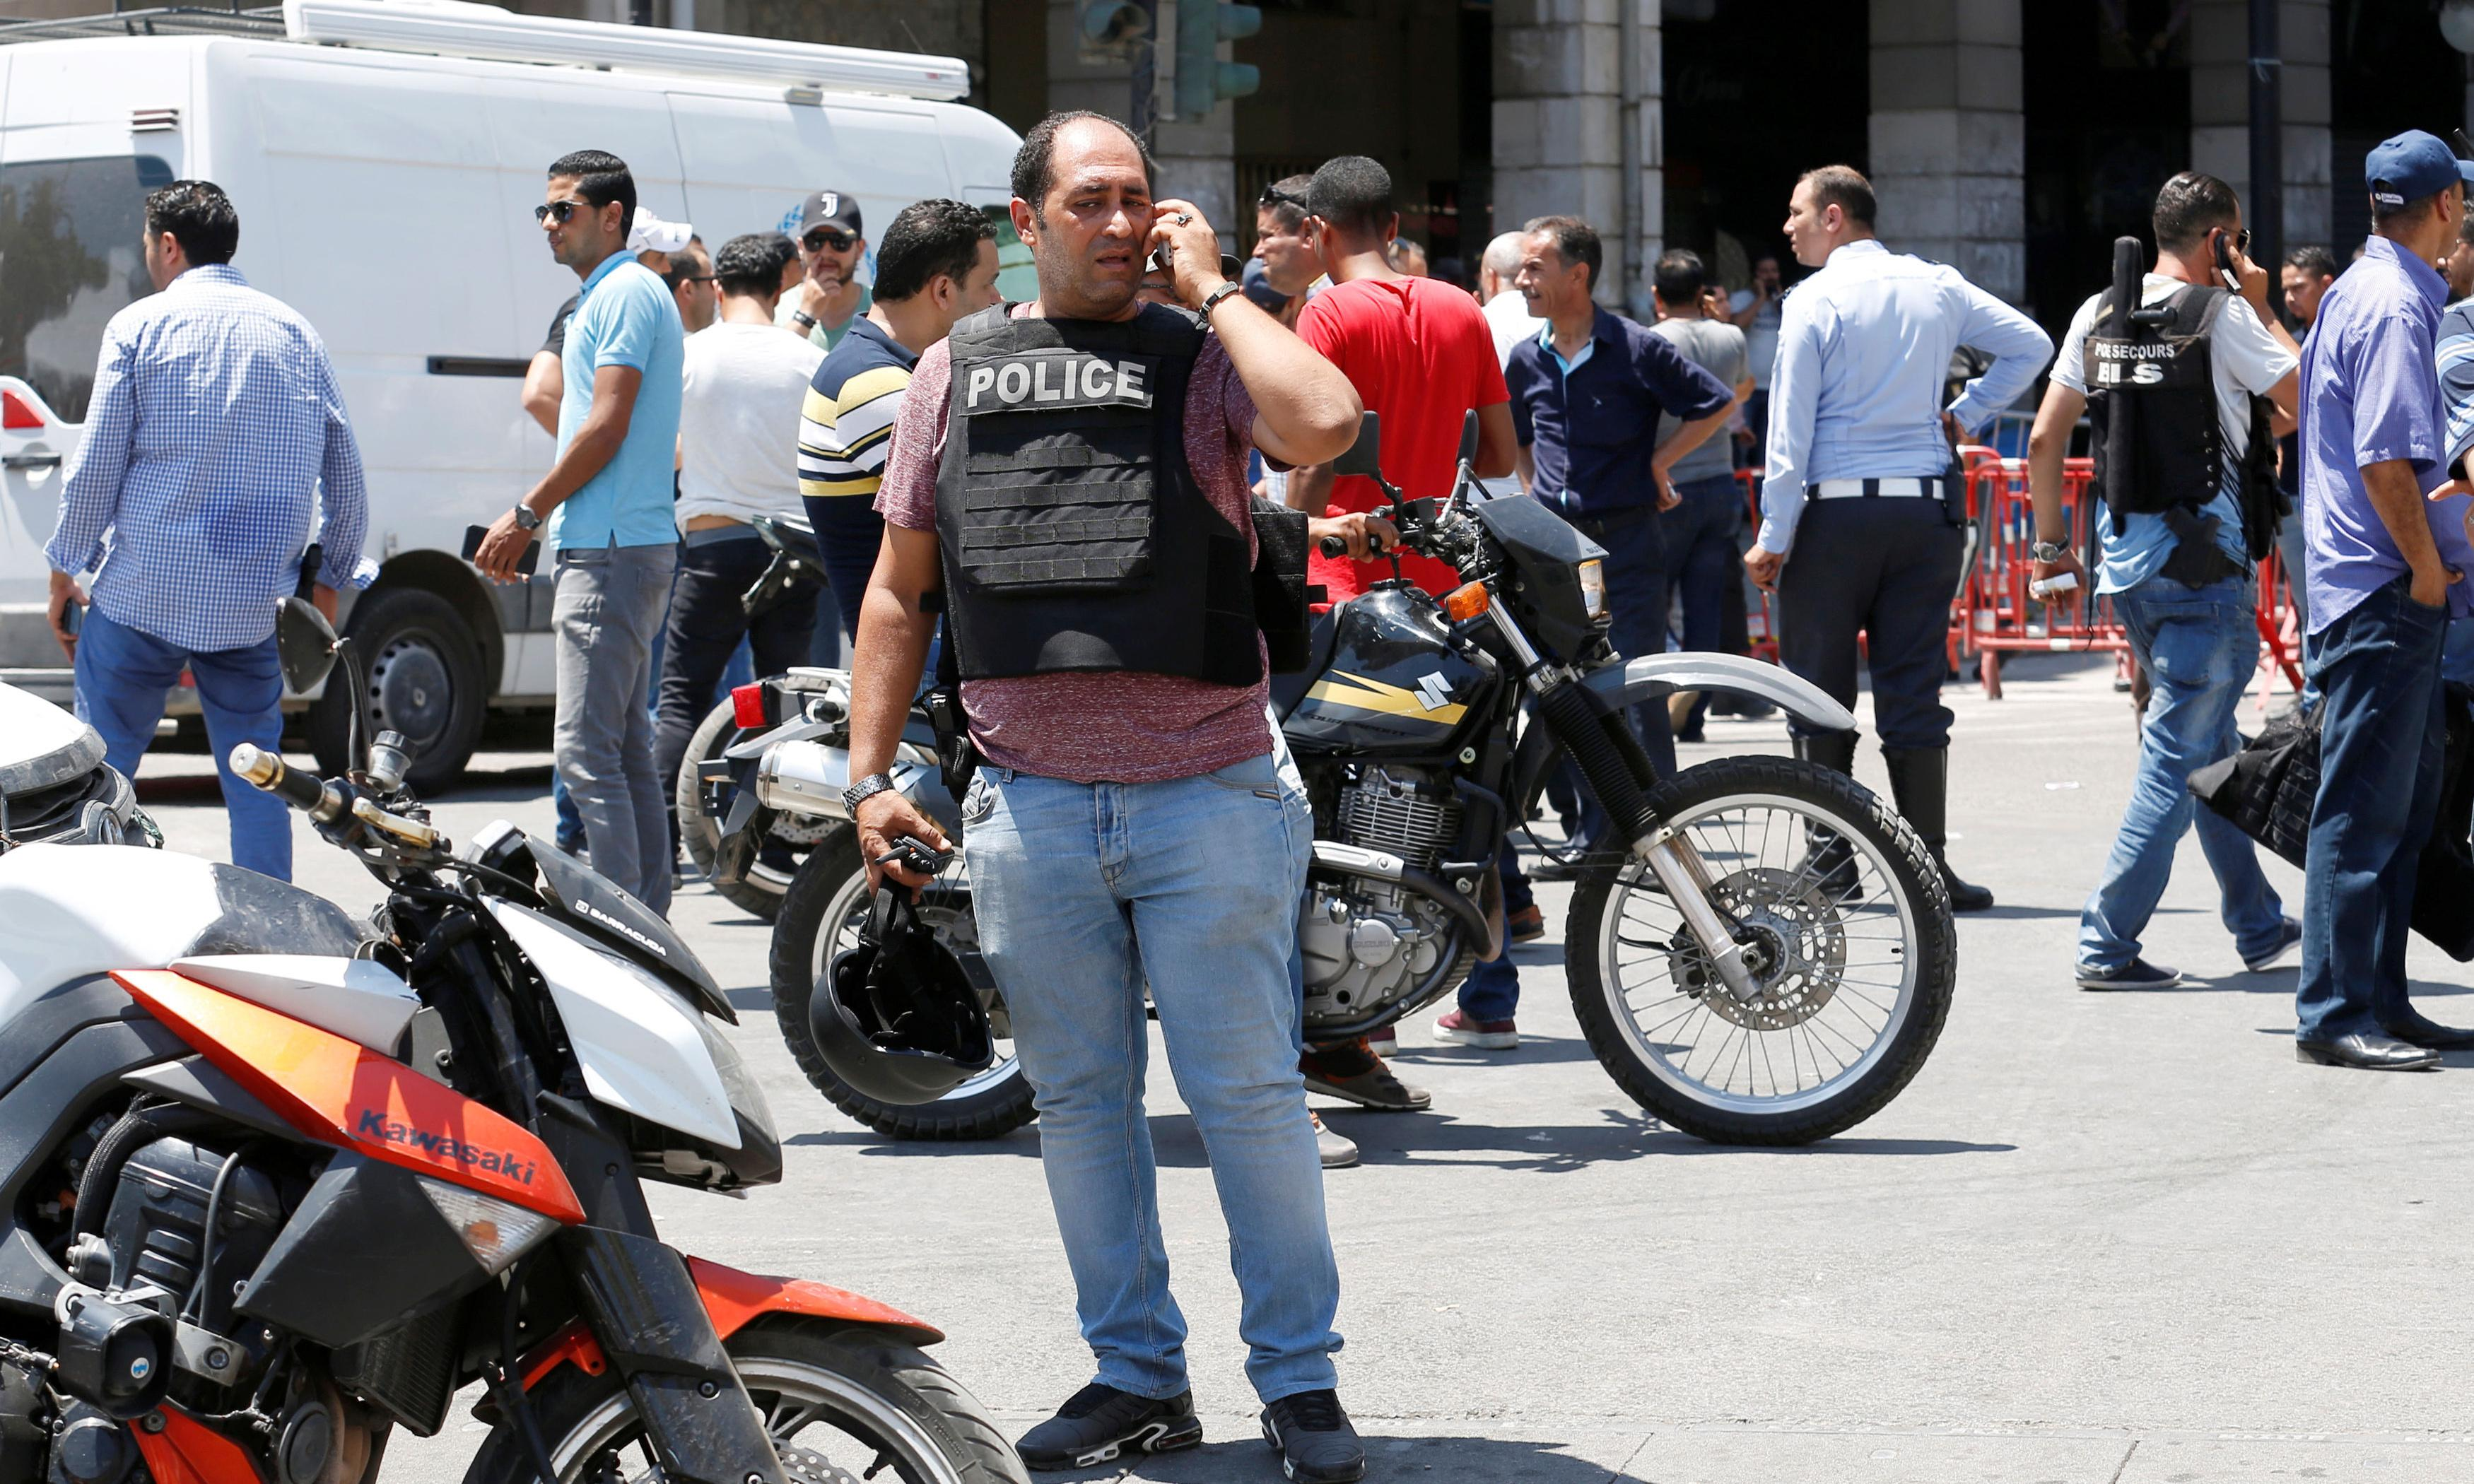 Suicide bombers kill police officer in attacks in Tunis